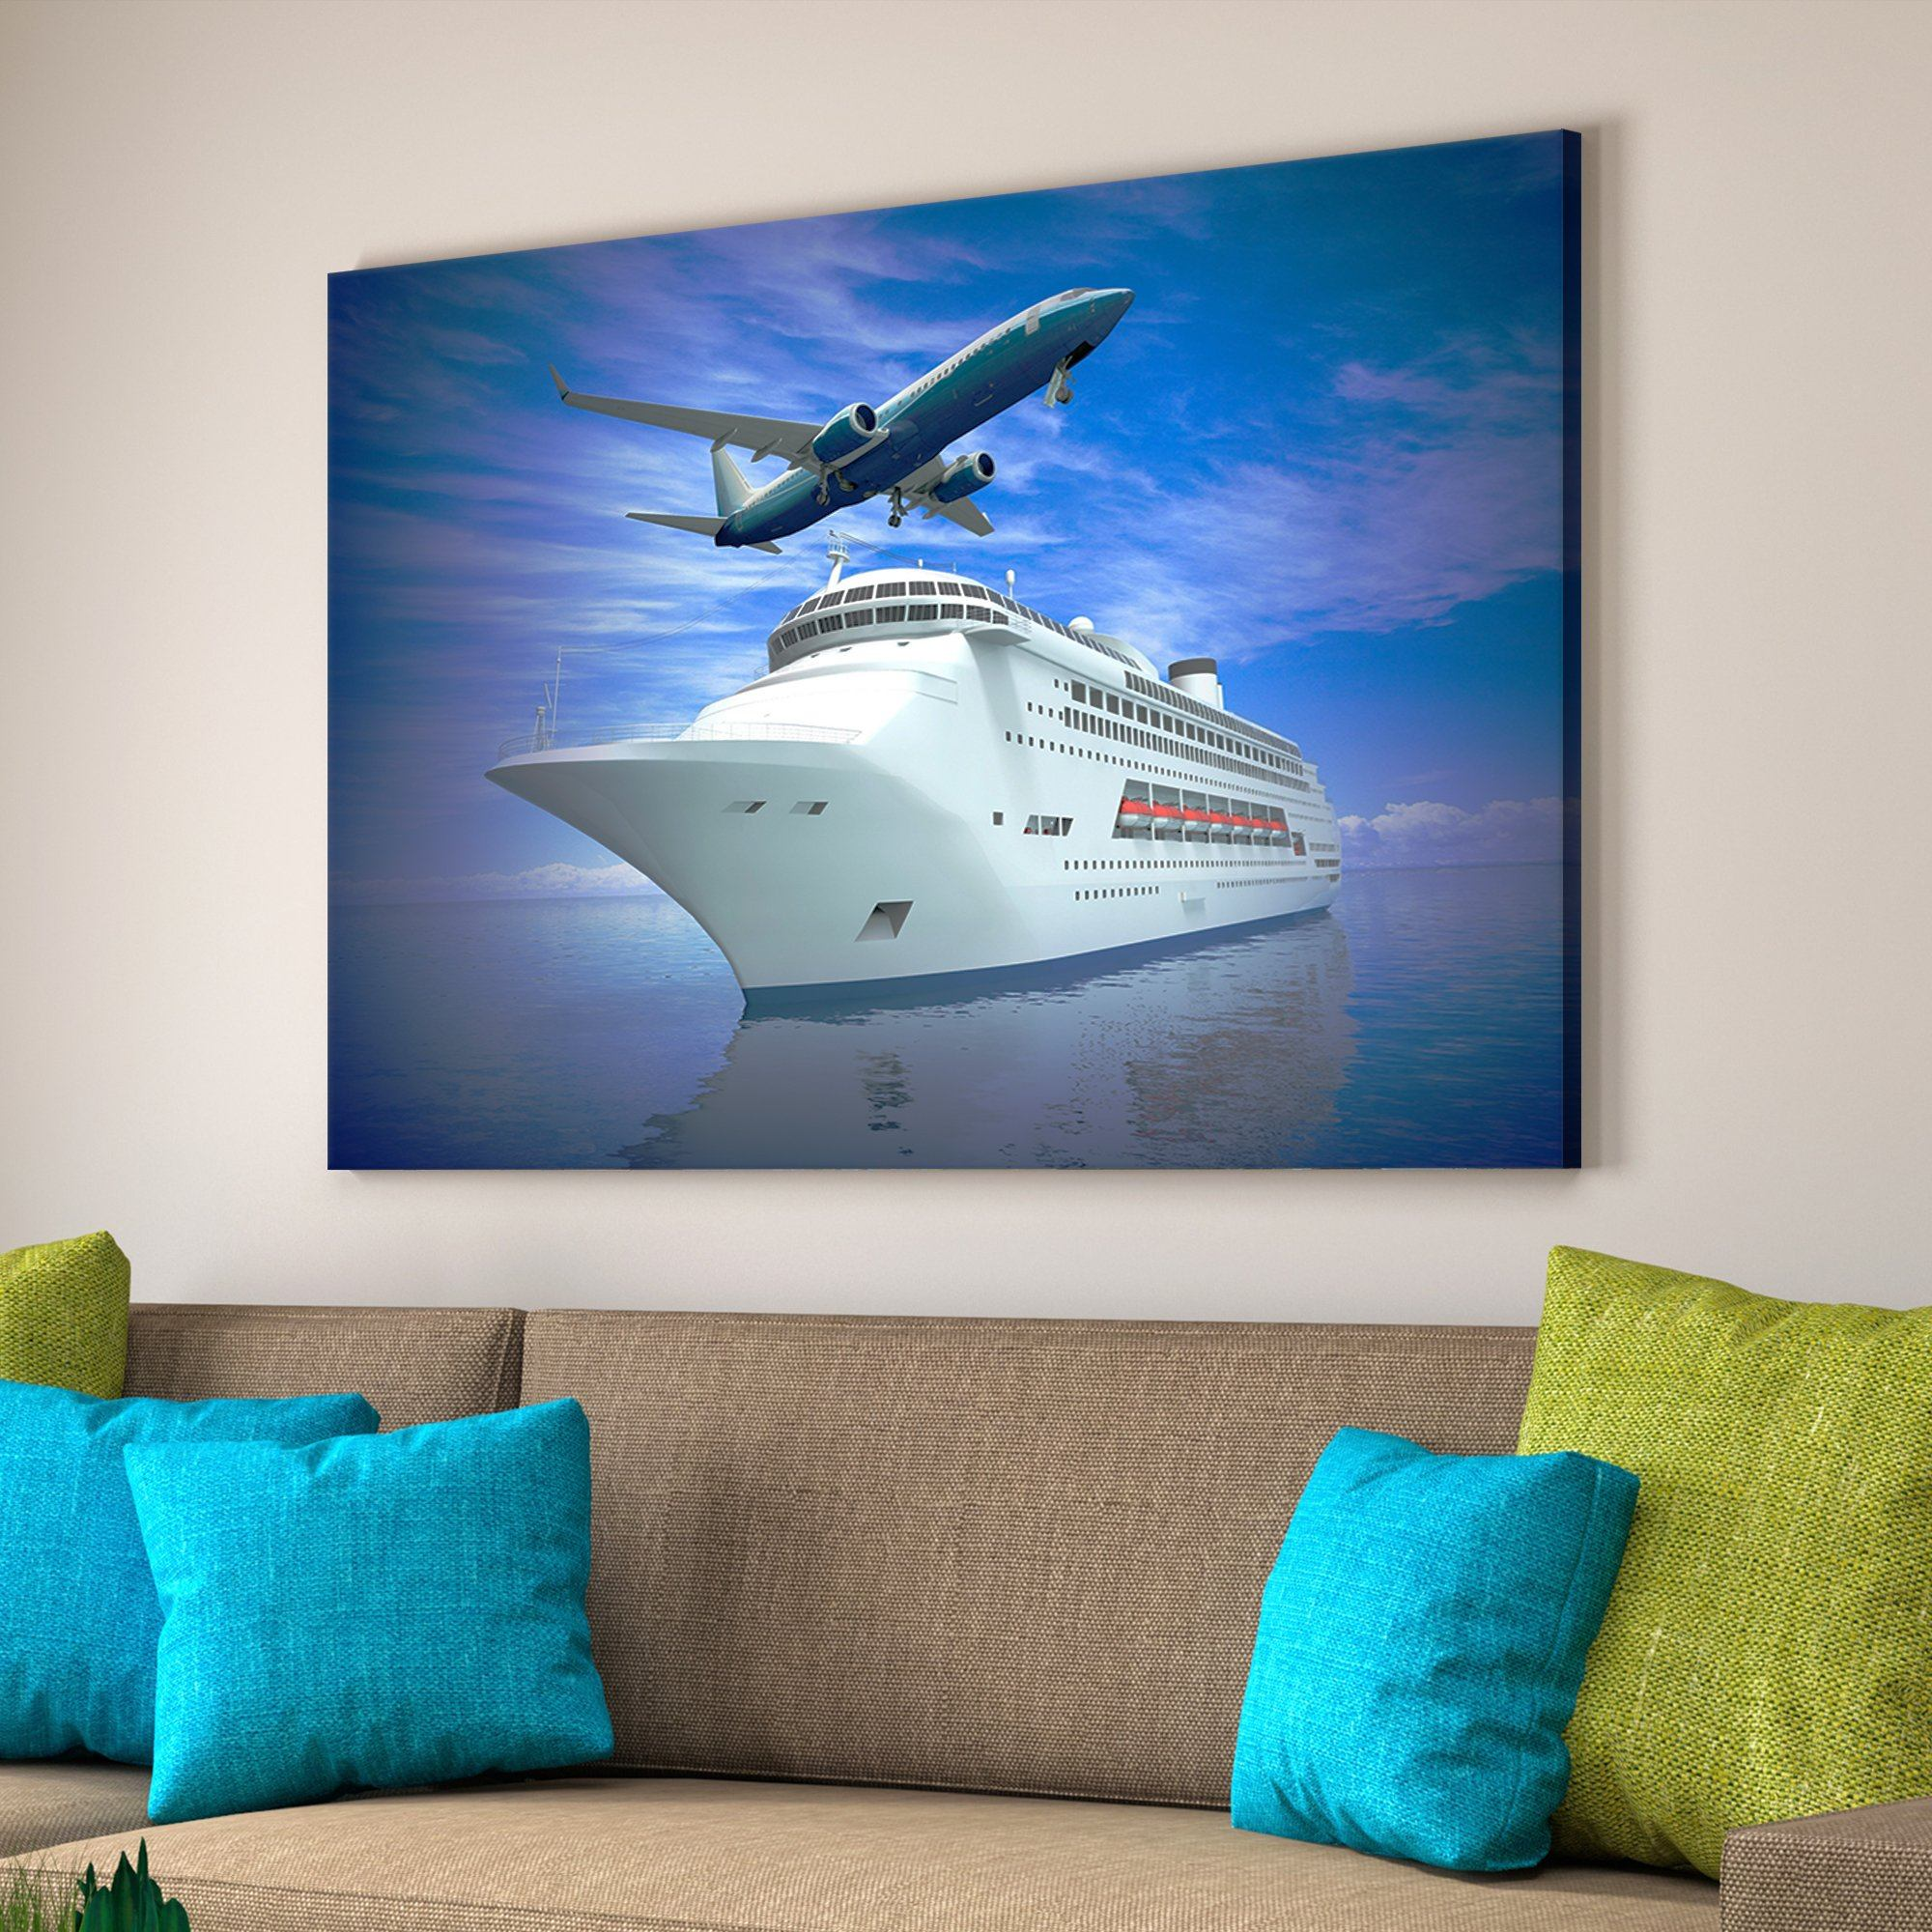 cruise ship vacation wall art